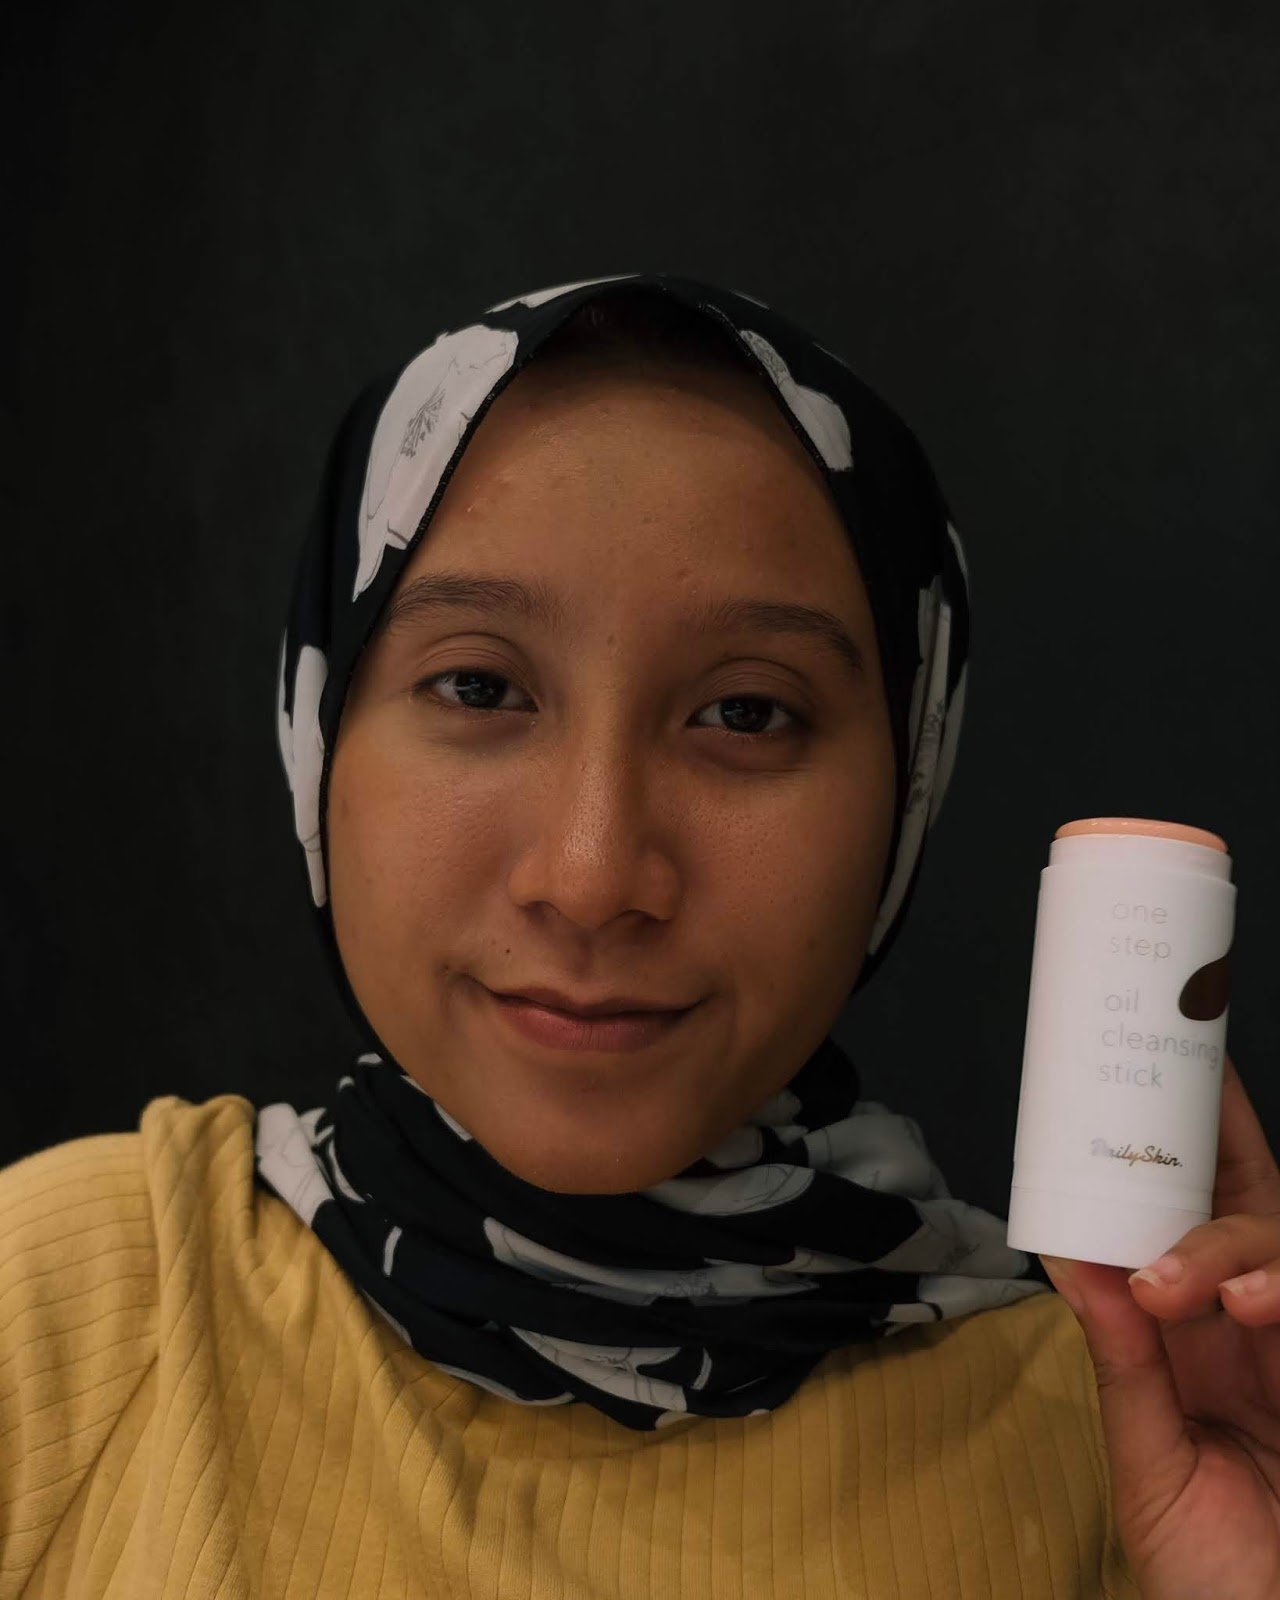 Daily Skin One Step Oil Cleansing Stick Althea Curitan Aqalili